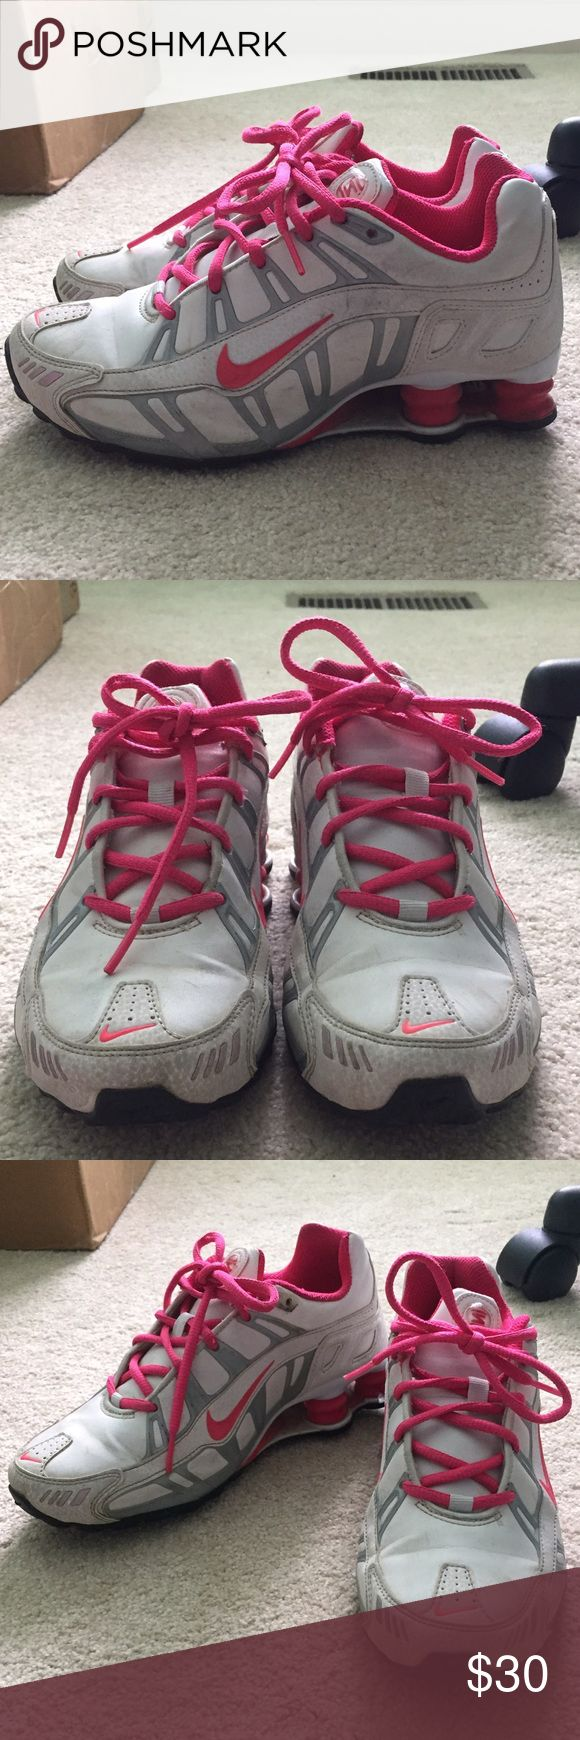 Pink and White Nike Shocks Pink and white nike shocks. Slightly dirty but can be cleaned. Overall good condition. Not worn much. Nike Shoes Athletic Shoes